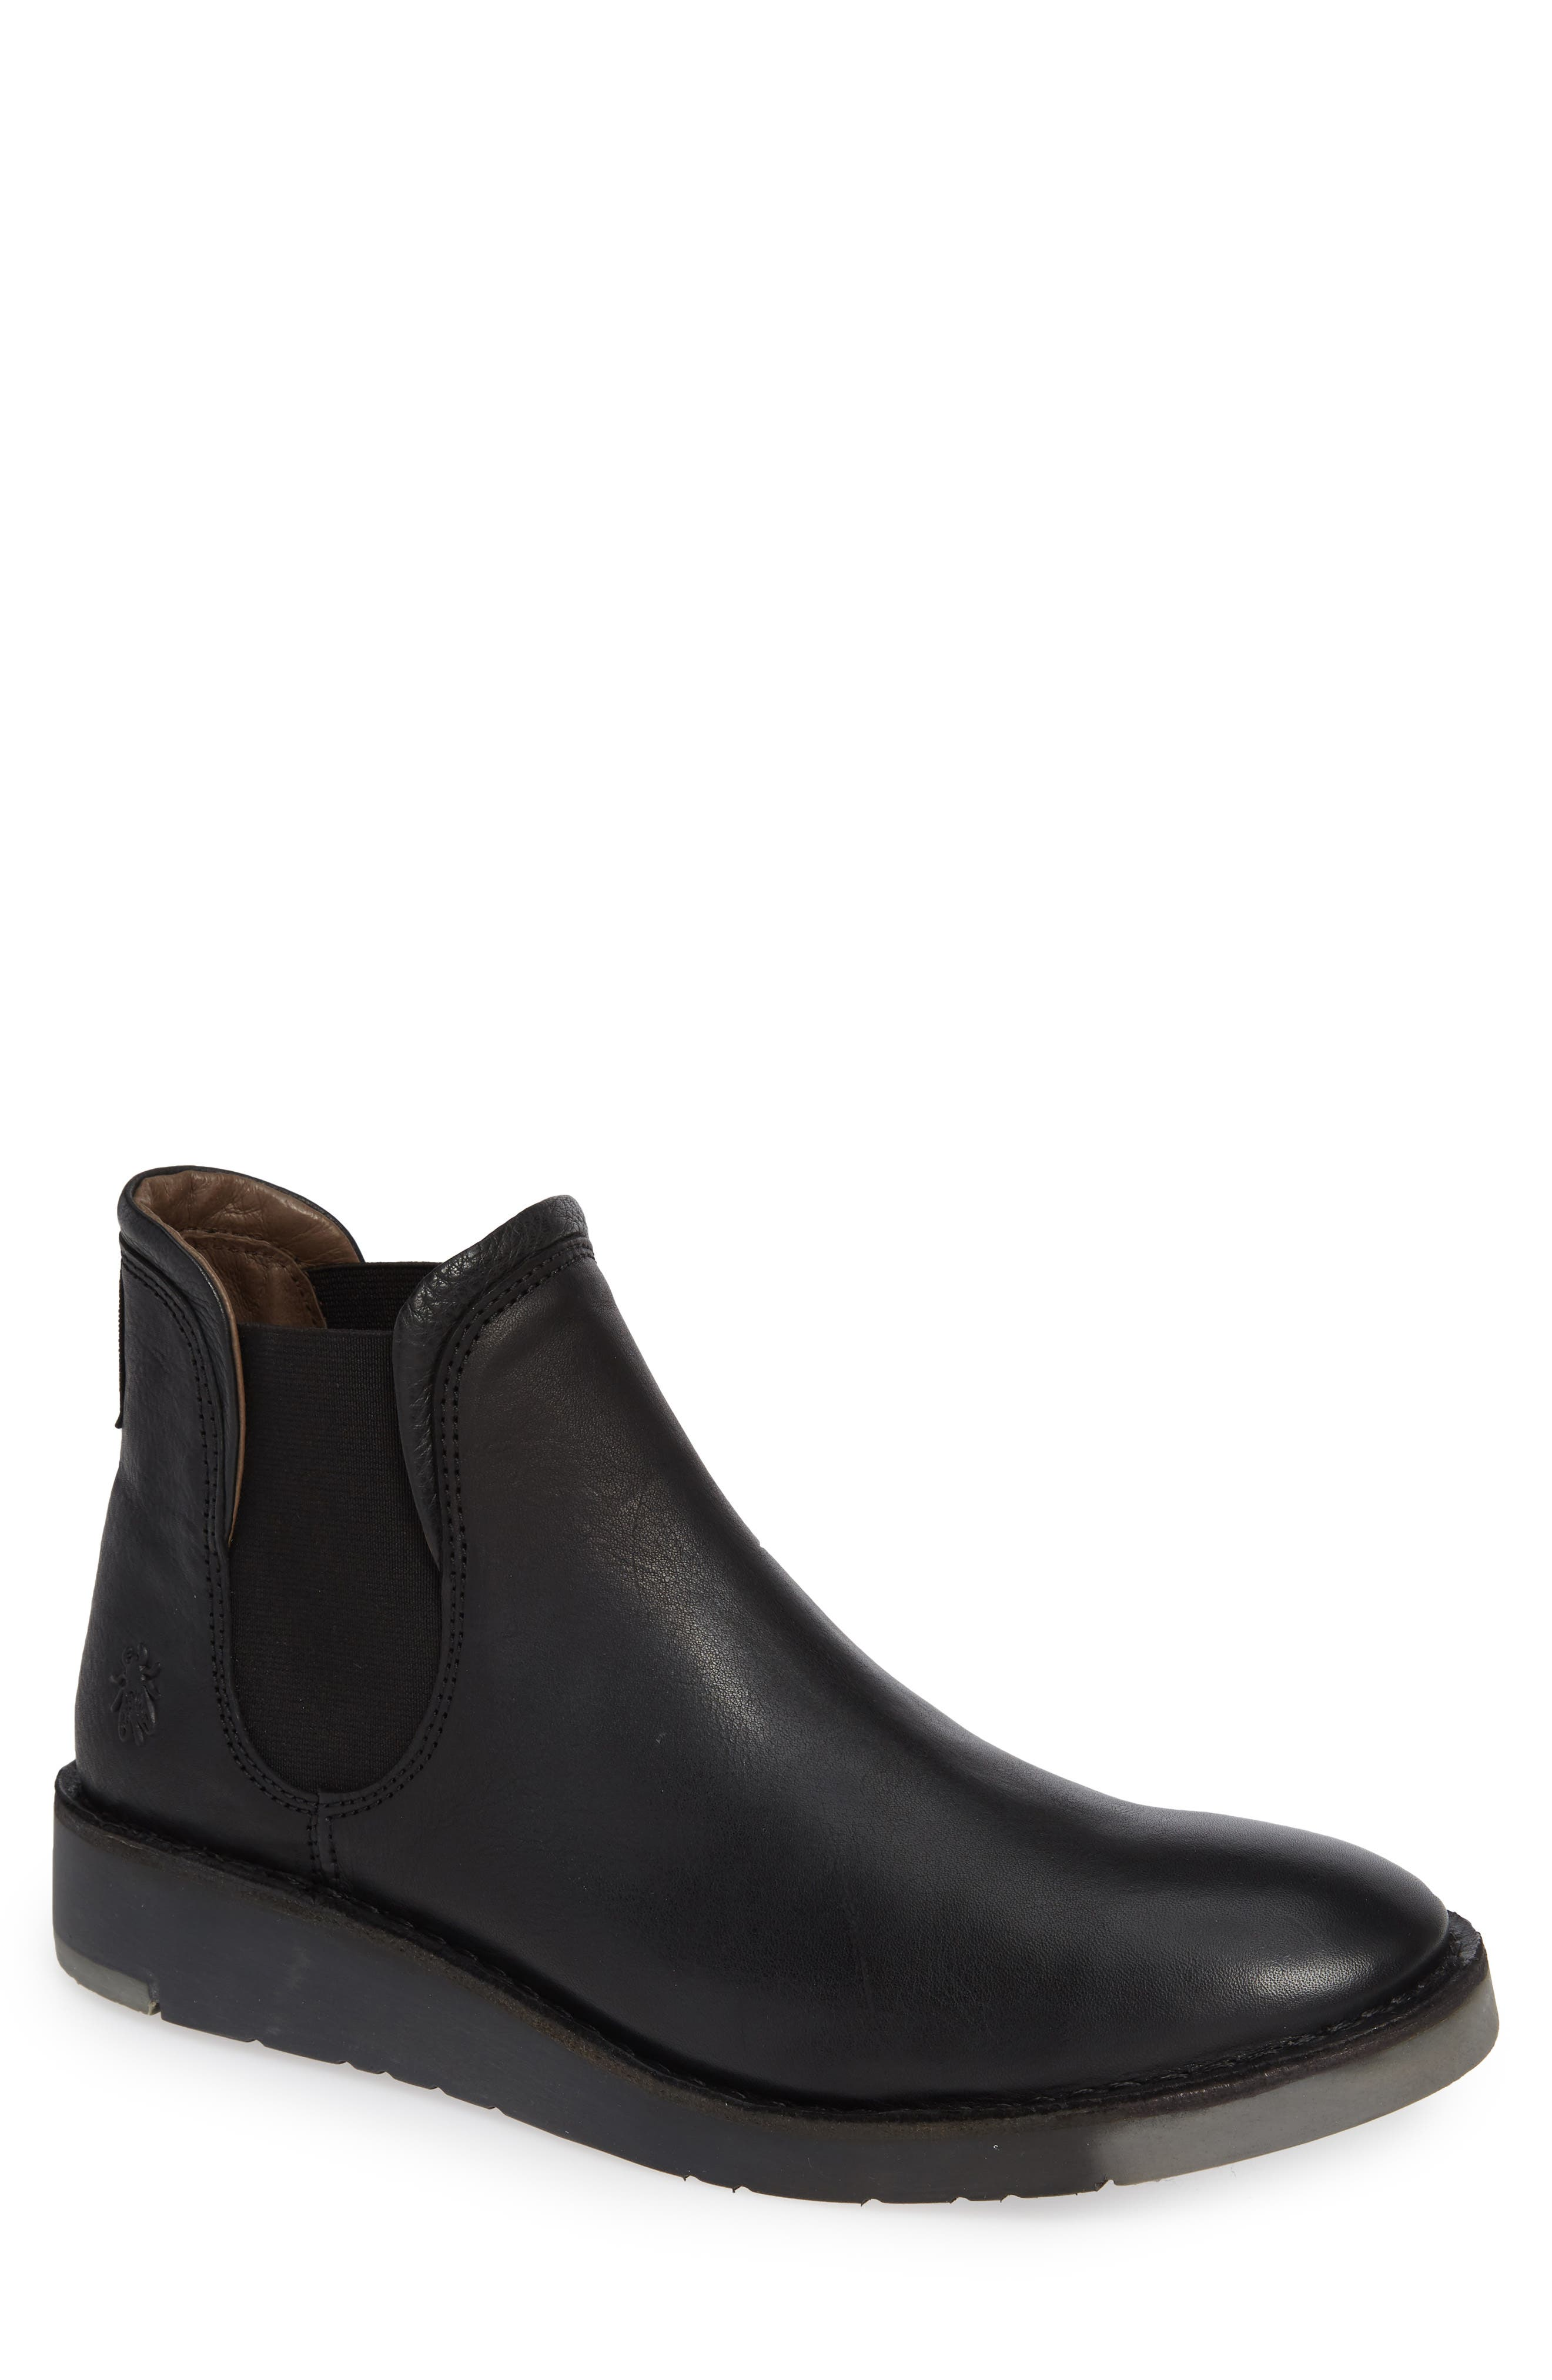 Sern Water Resistant Chelsea Boot,                         Main,                         color, BLACK APSO